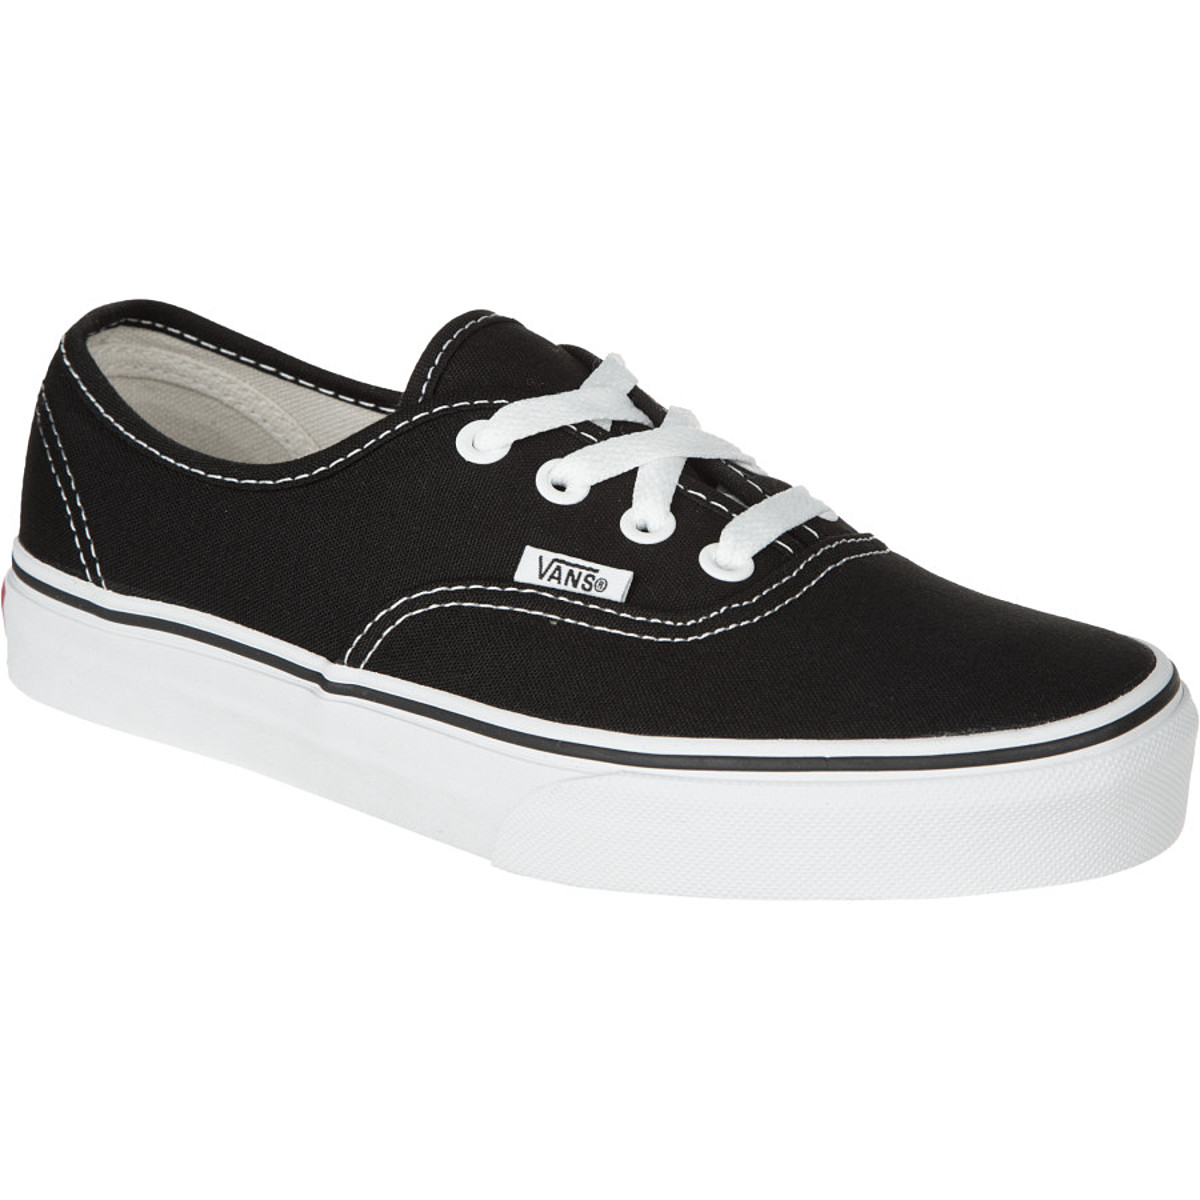 Vans Authentic Core Classic Shoe Black, 7.5